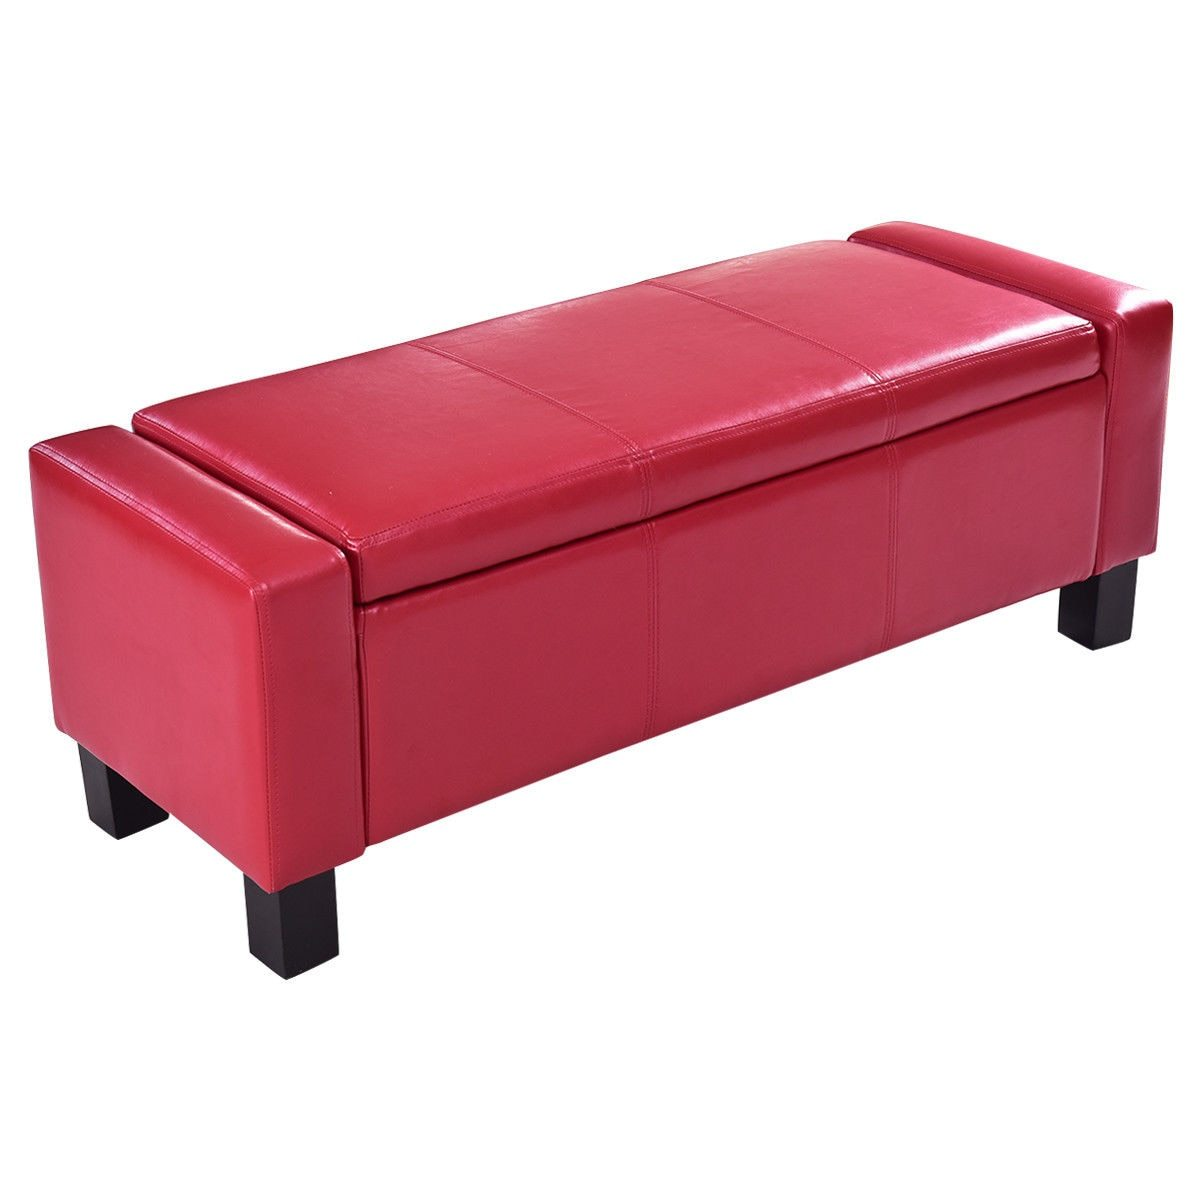 43″ Red PU Leather Ottoman